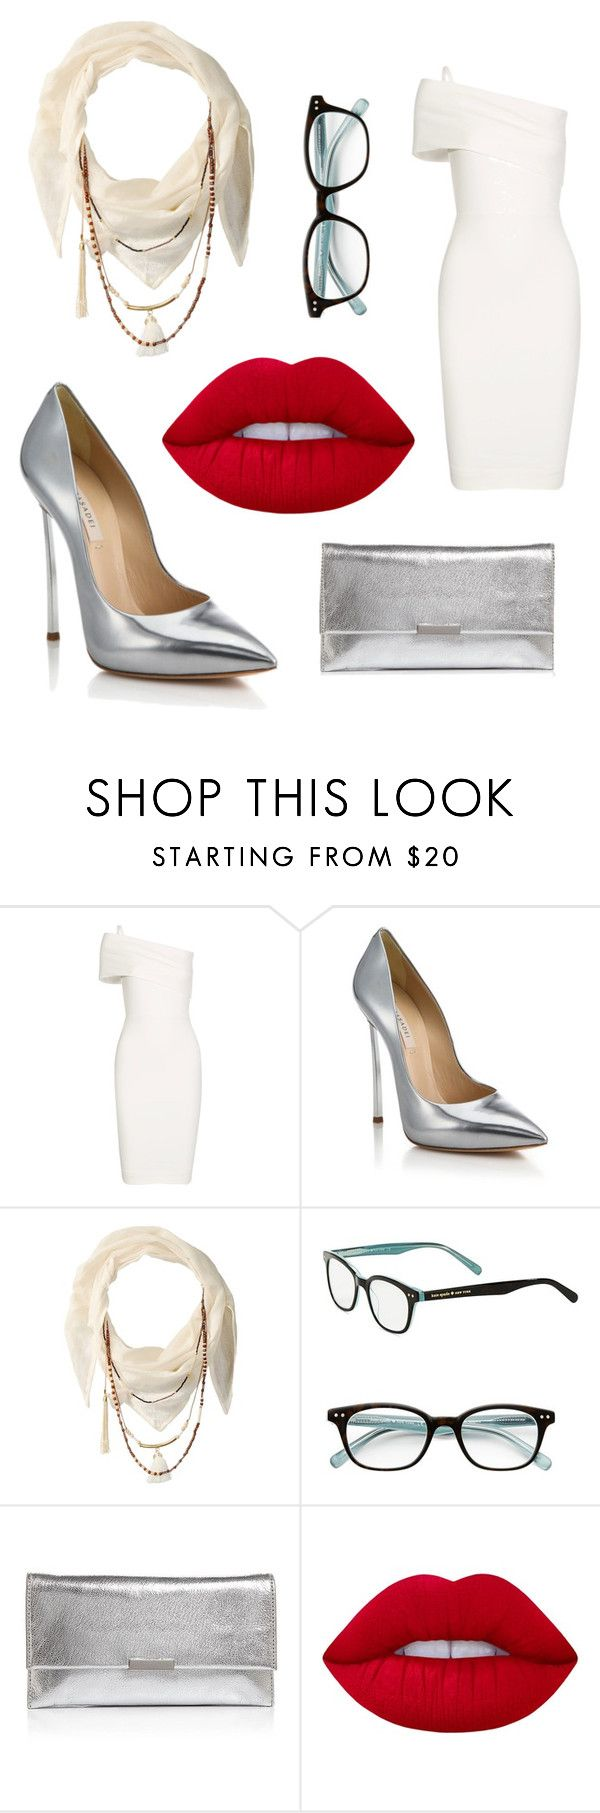 """""""Titles Are Hard"""" by the-wayward-huntress ❤ liked on Polyvore featuring Michelle Mason, Casadei, BCBGeneration, Kate Spade, Loeffler Randall and Lime Crime"""